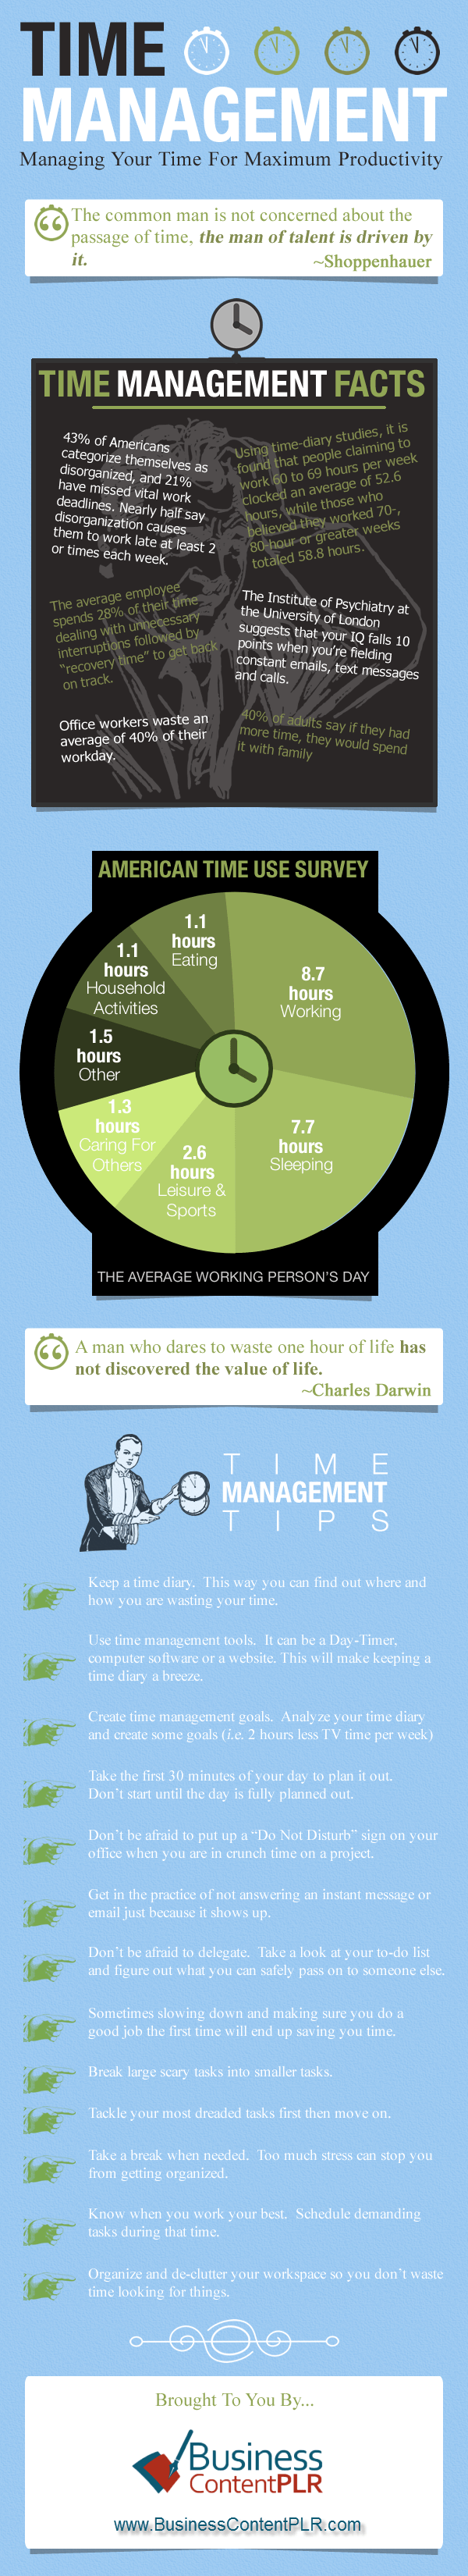 Time Management Tips – Infographic